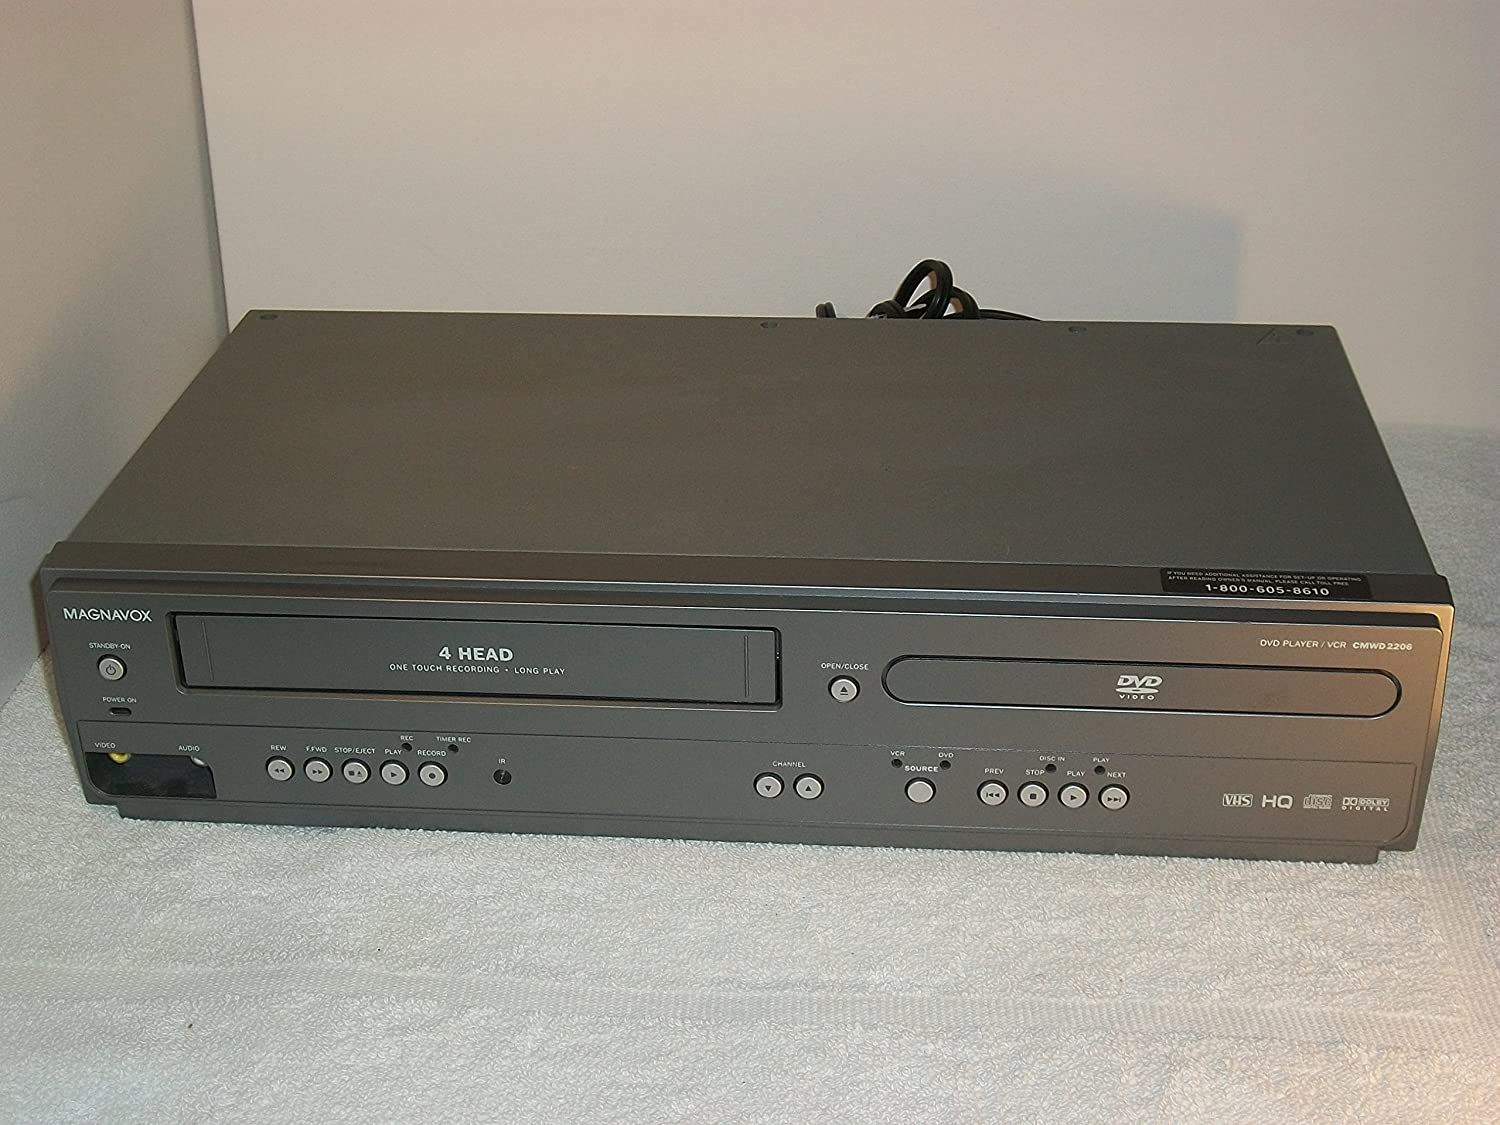 magnavox vcr dvd combo manual how to and user guide instructions u2022 rh taxibermuda co Magnavox DVD Recorder VCR Combo Magnavox VCR DVD Player Manual